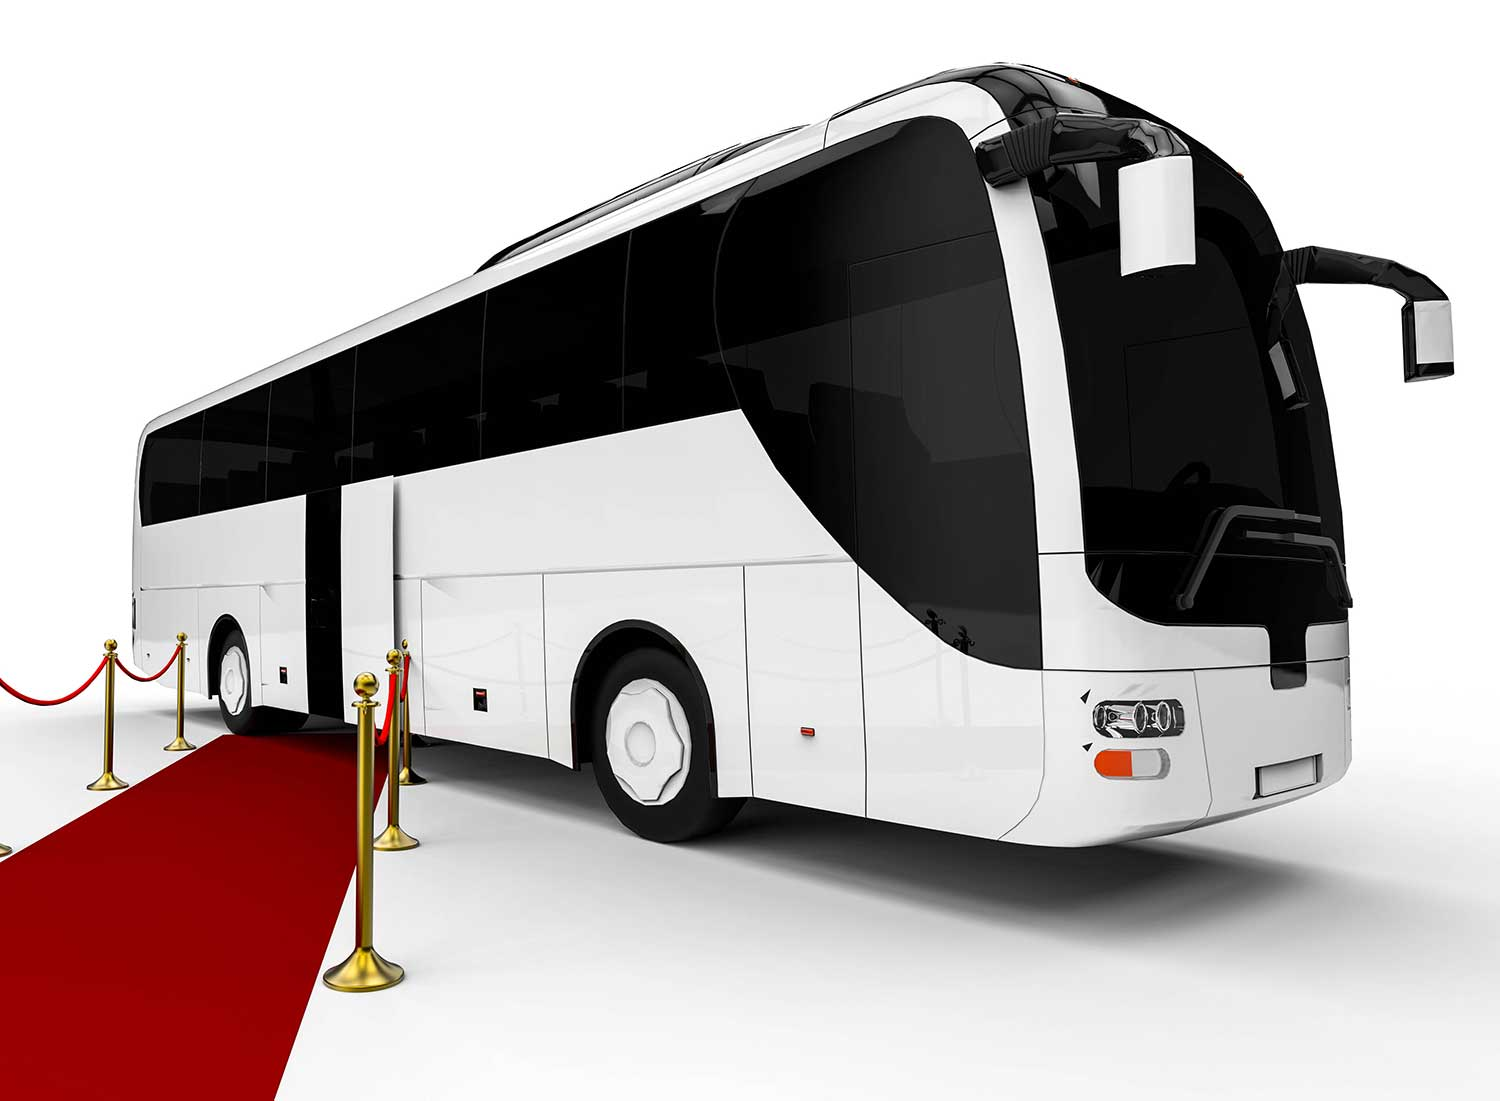 Lakeland Party Bus - Photo of a bus with a red carpet in front